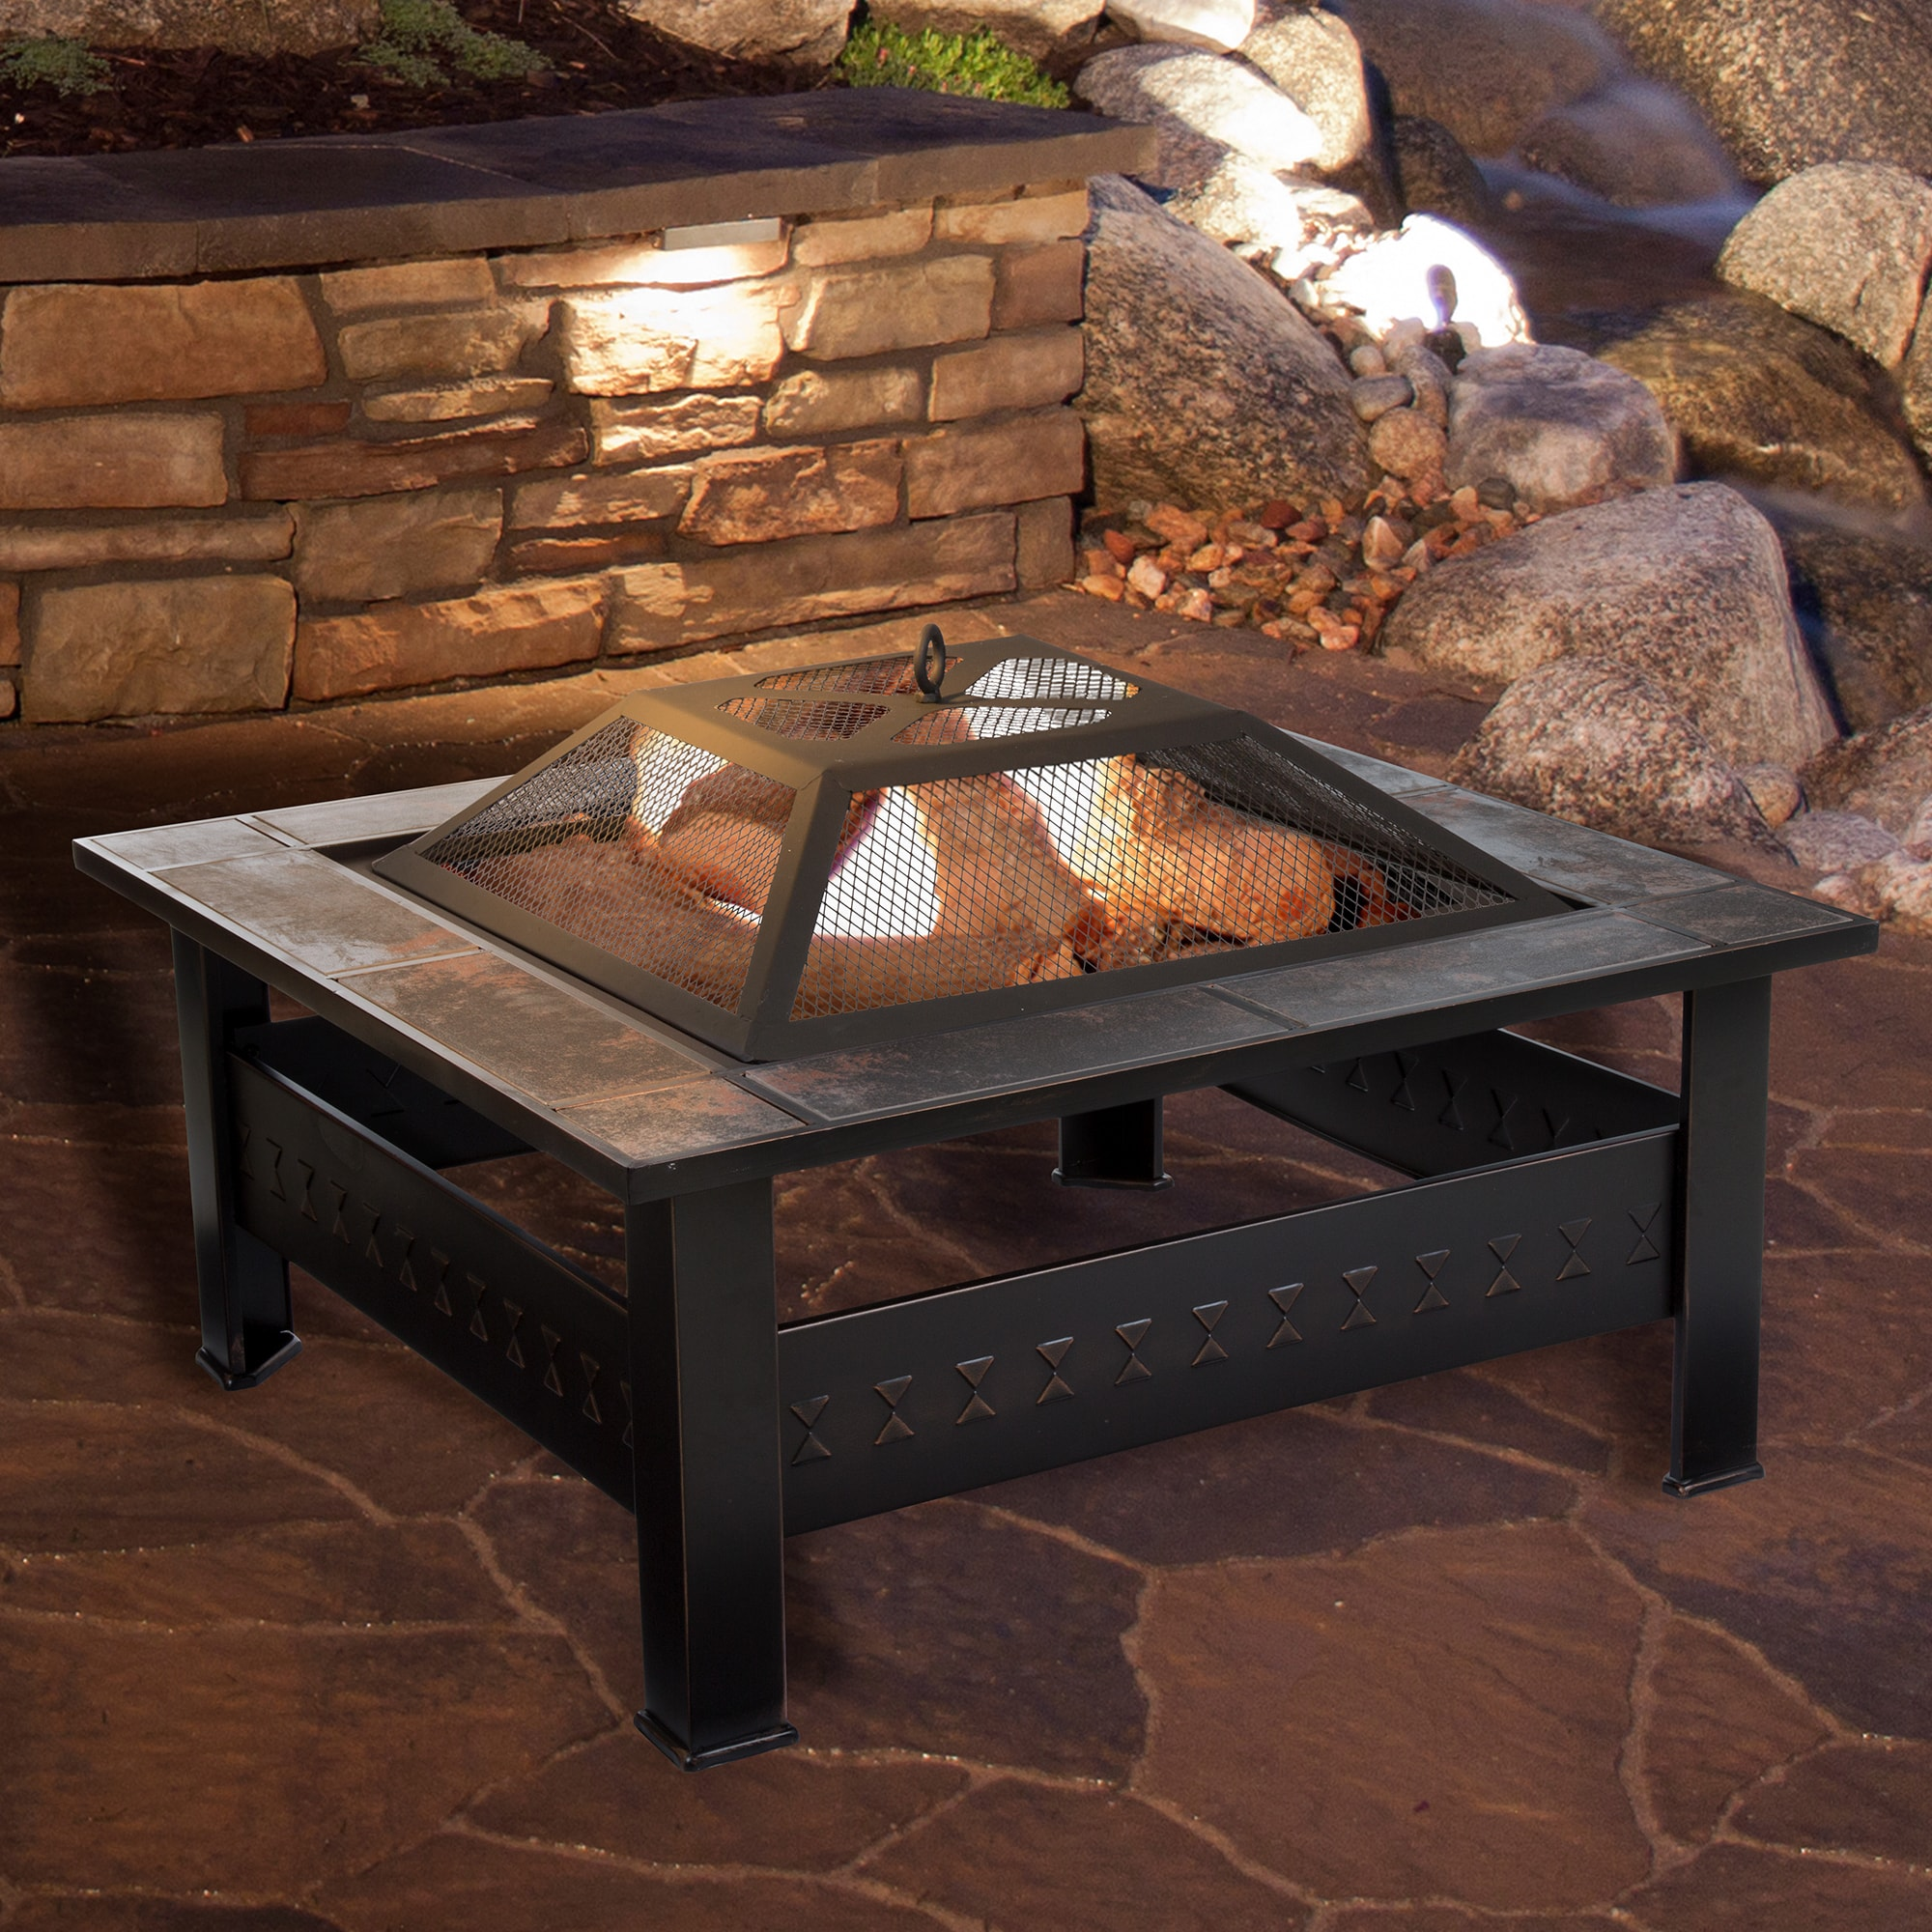 Shop Pure Garden 32 Inch Square Tile Fire Pit With Cover Bronze